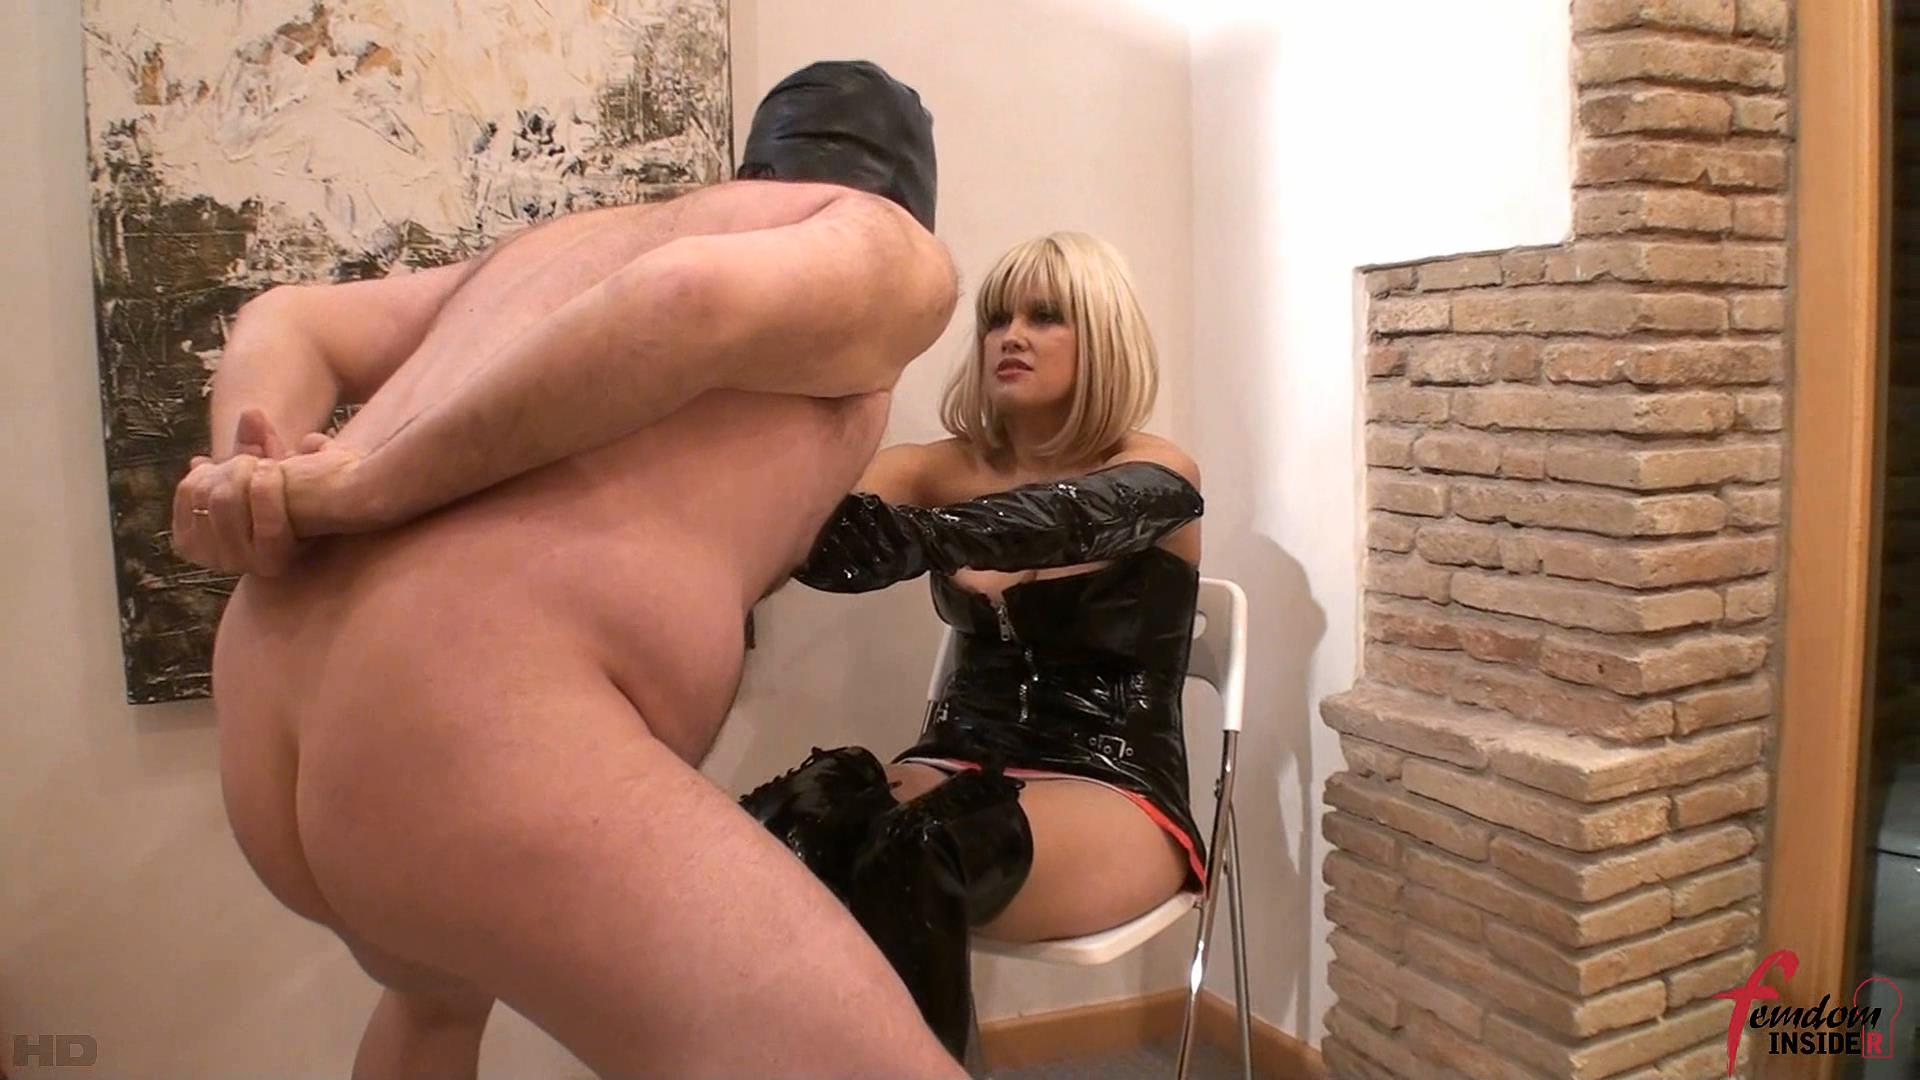 Mistress Karen In Scene: Mistress Karen Destroys Balls - FEMDOMINSIDER - FULL HD/1080p/WMV